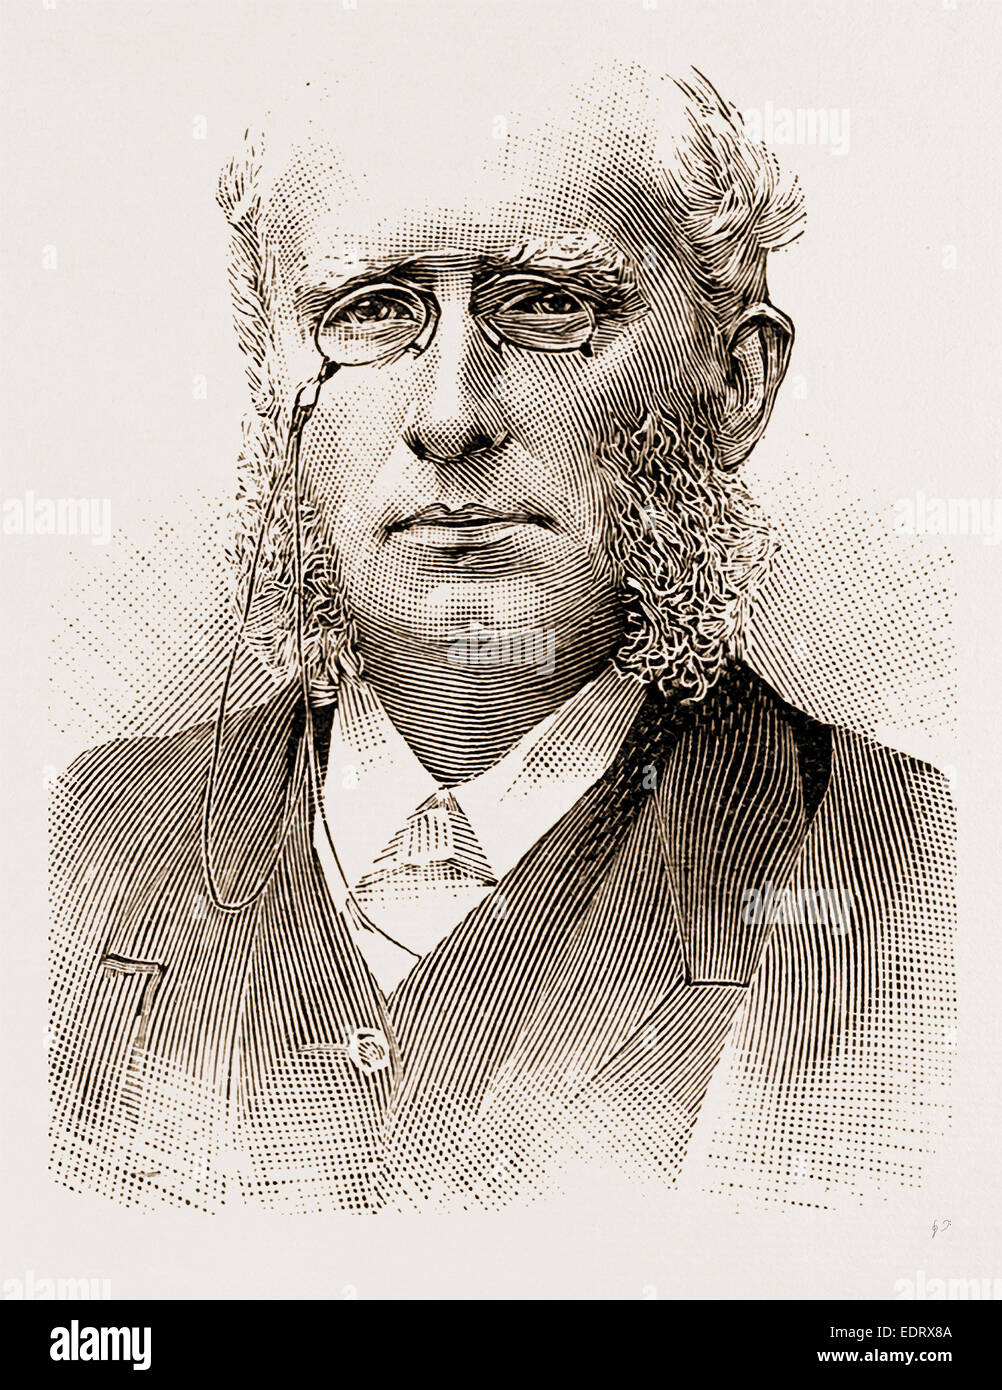 and in 1881 the THE REV. HENRY WACE, D.D., Stock Photo